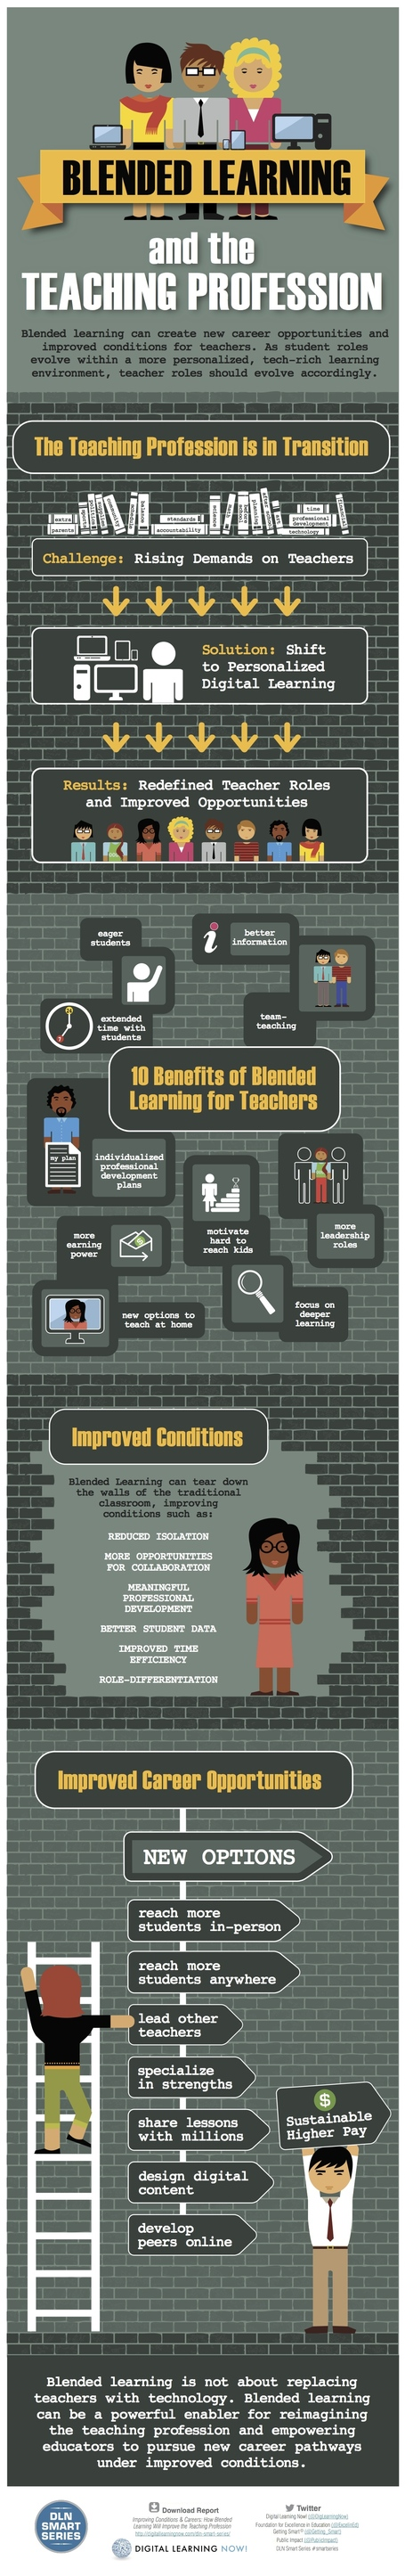 Blended Learning & The Teaching Profession [Infographic] | Create, Innovate & Evaluate in Higher Education | Scoop.it